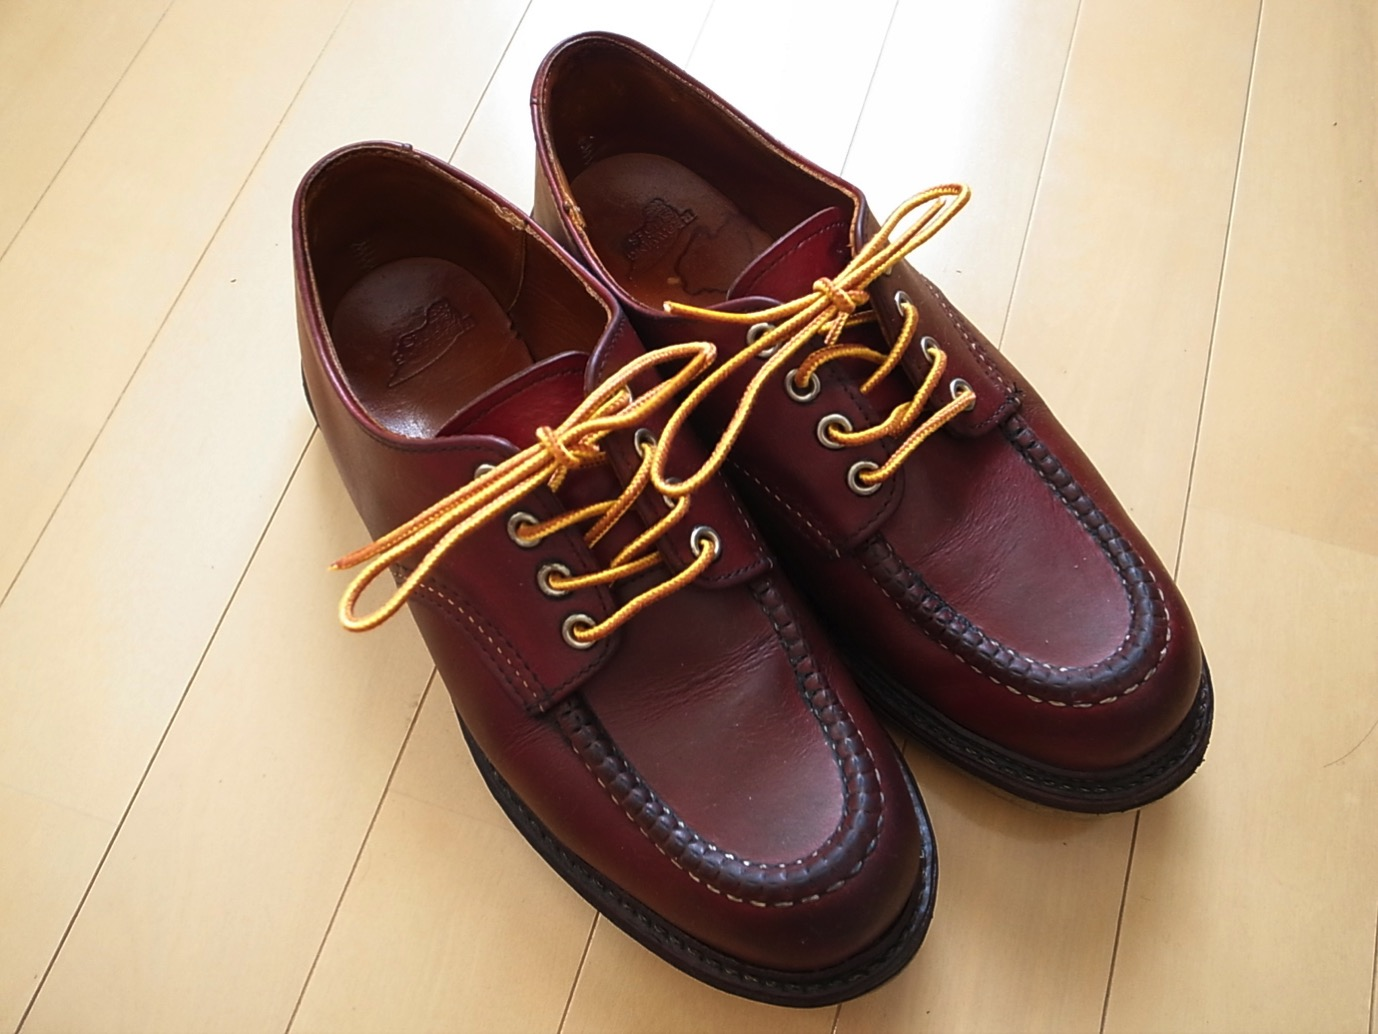 Redwing boot laces 6